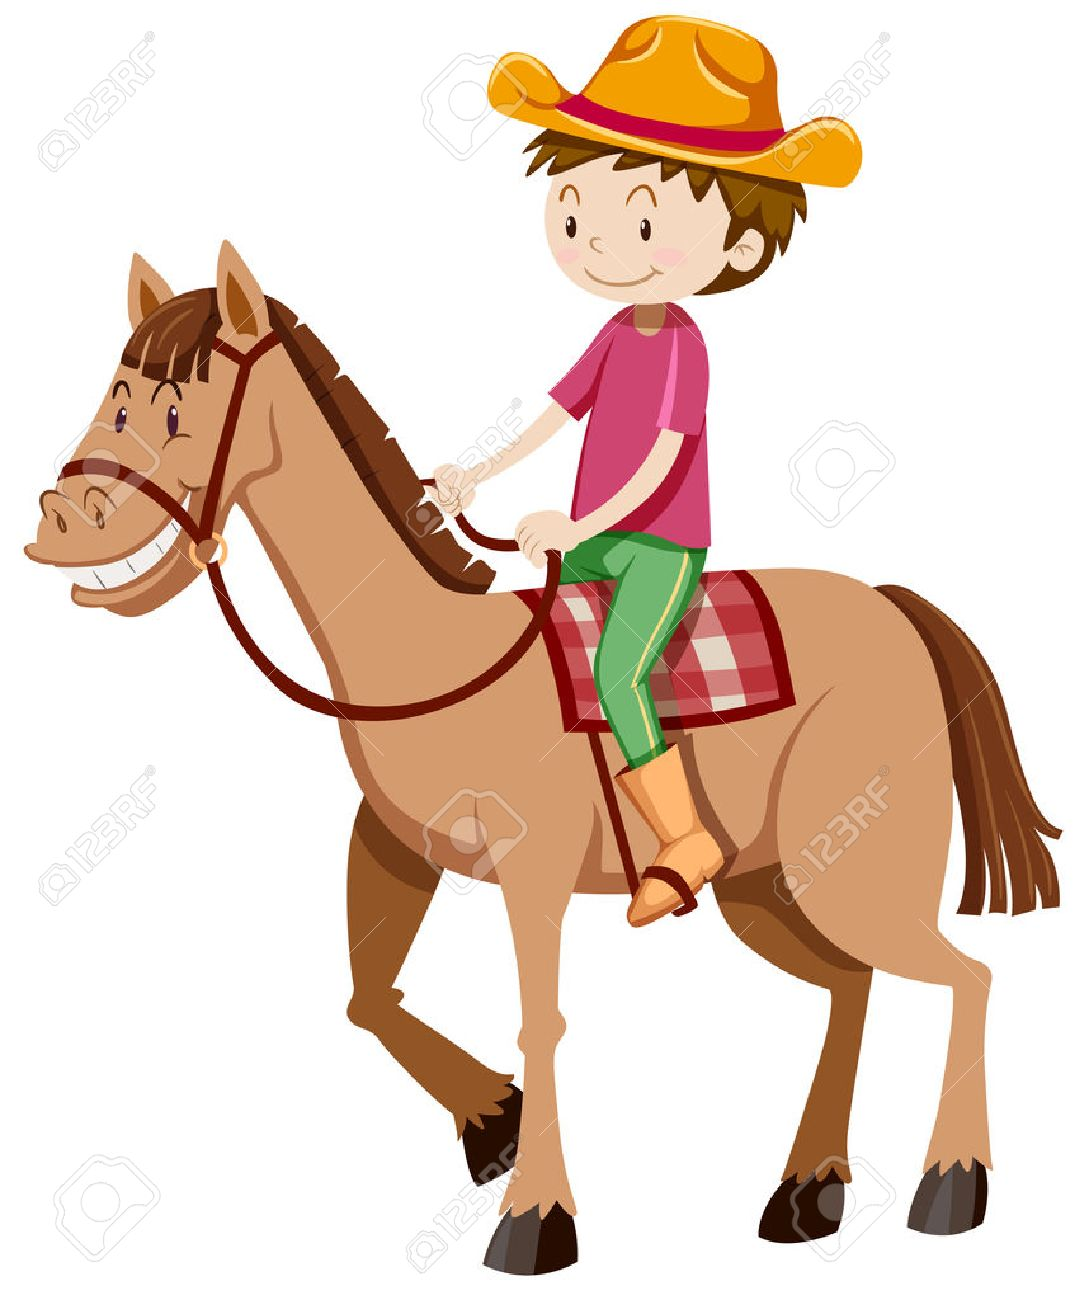 man riding horse alone illustration royalty free cliparts vectors rh 123rf com horse racing clip art images horse riding clipart black and white